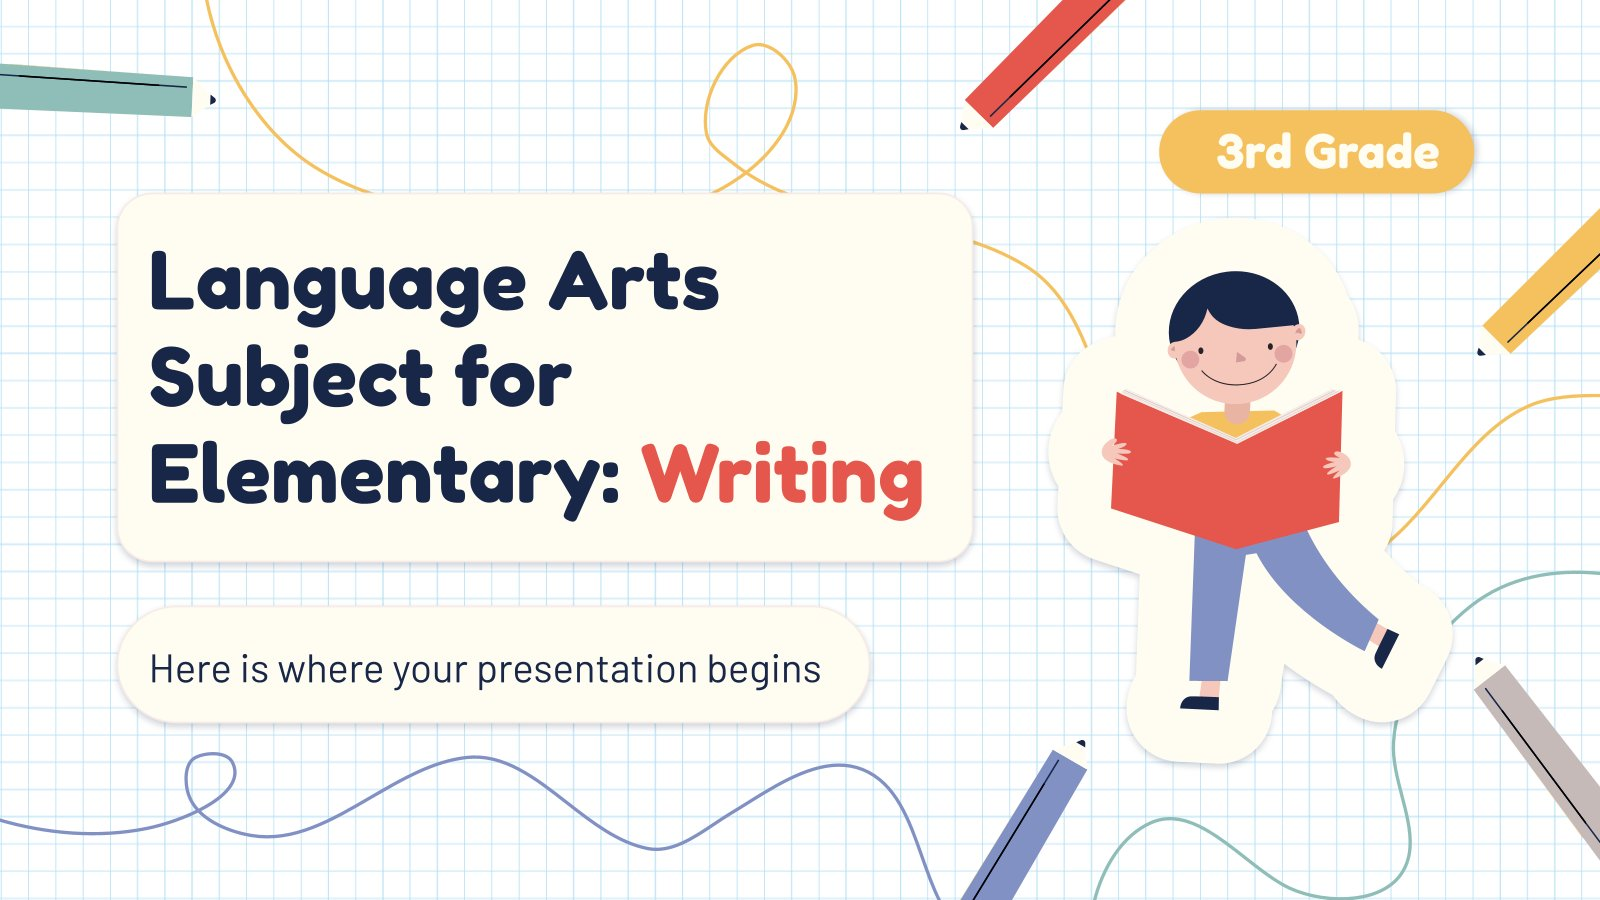 Language Arts Subject for Elementary - 3rd Grade: Writing presentation template